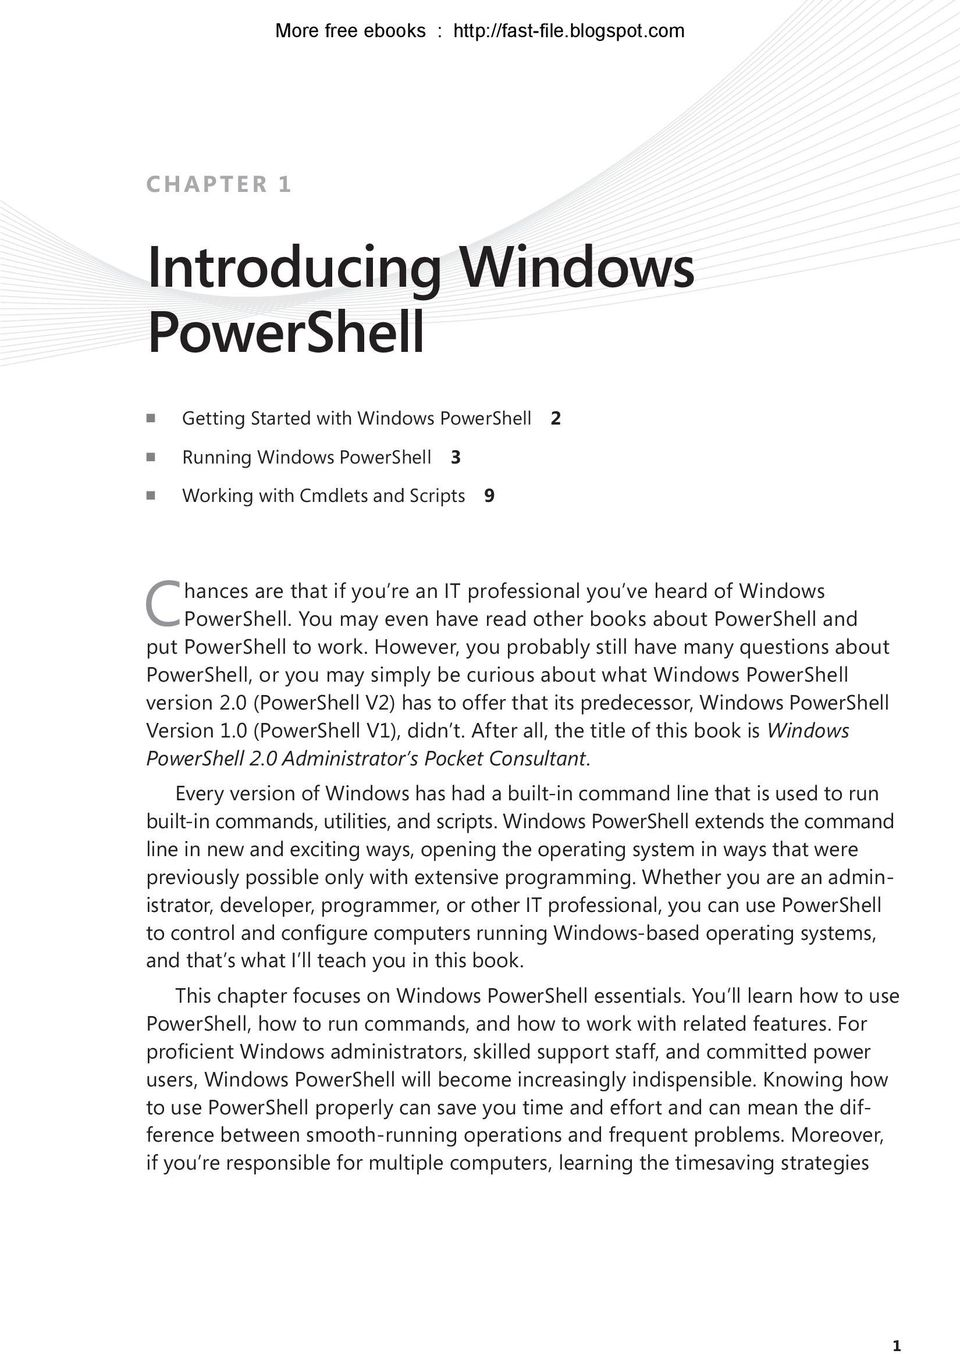 However, you probably still have many questions about PowerShell, or you may simply be curious about what Windows PowerShell version 2.